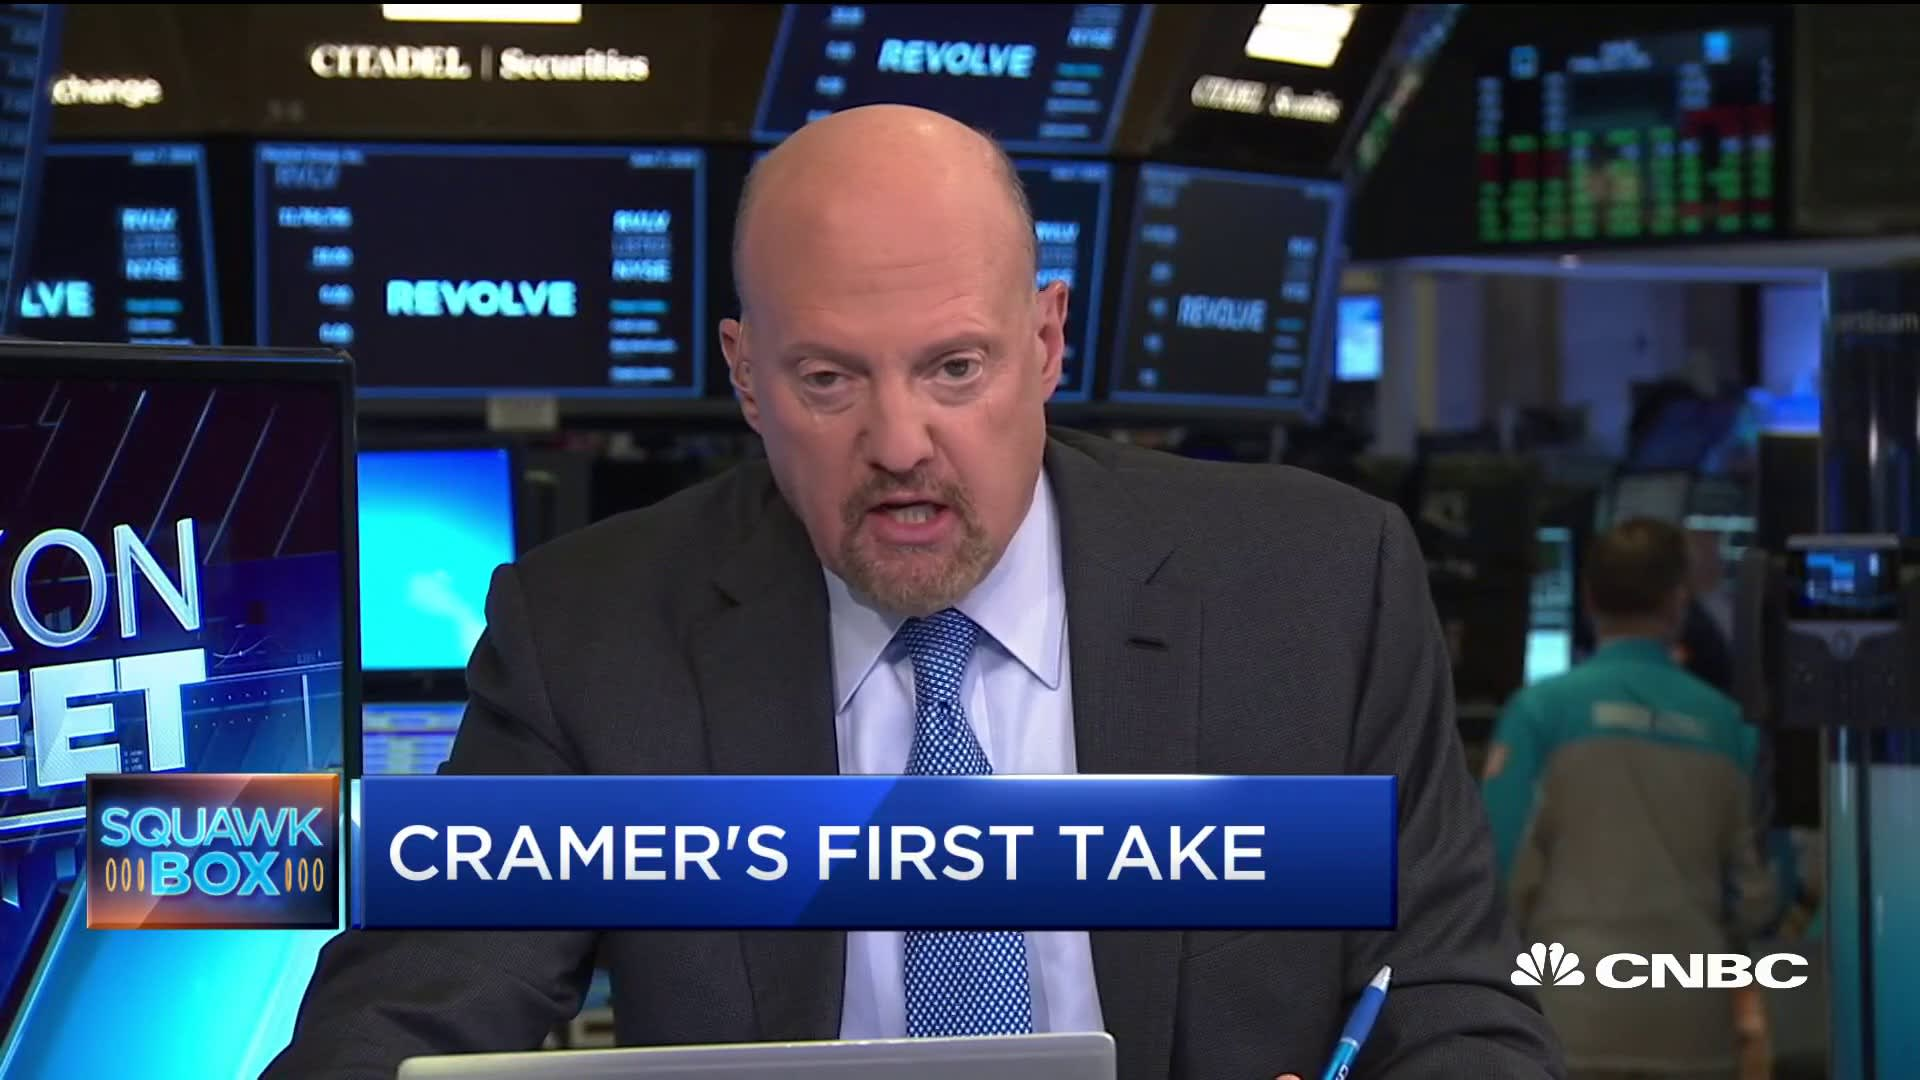 Cramer slams Trump tariffs: He should 'stop beating' Mexico up, 'they haven't done anything'